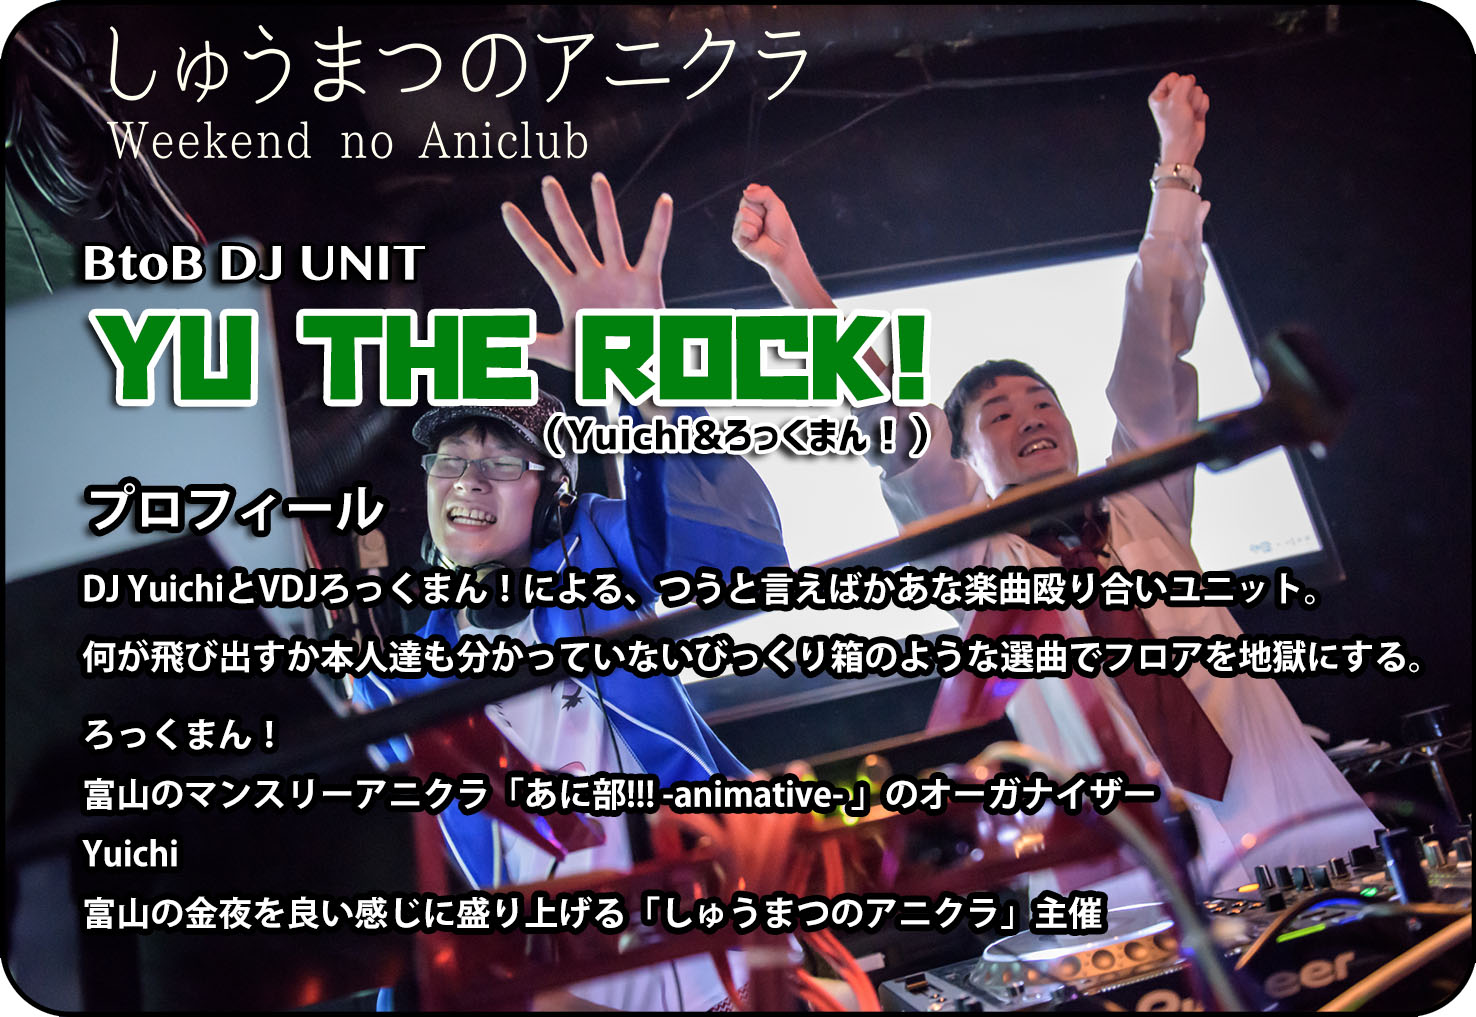 YU THE ROCK!